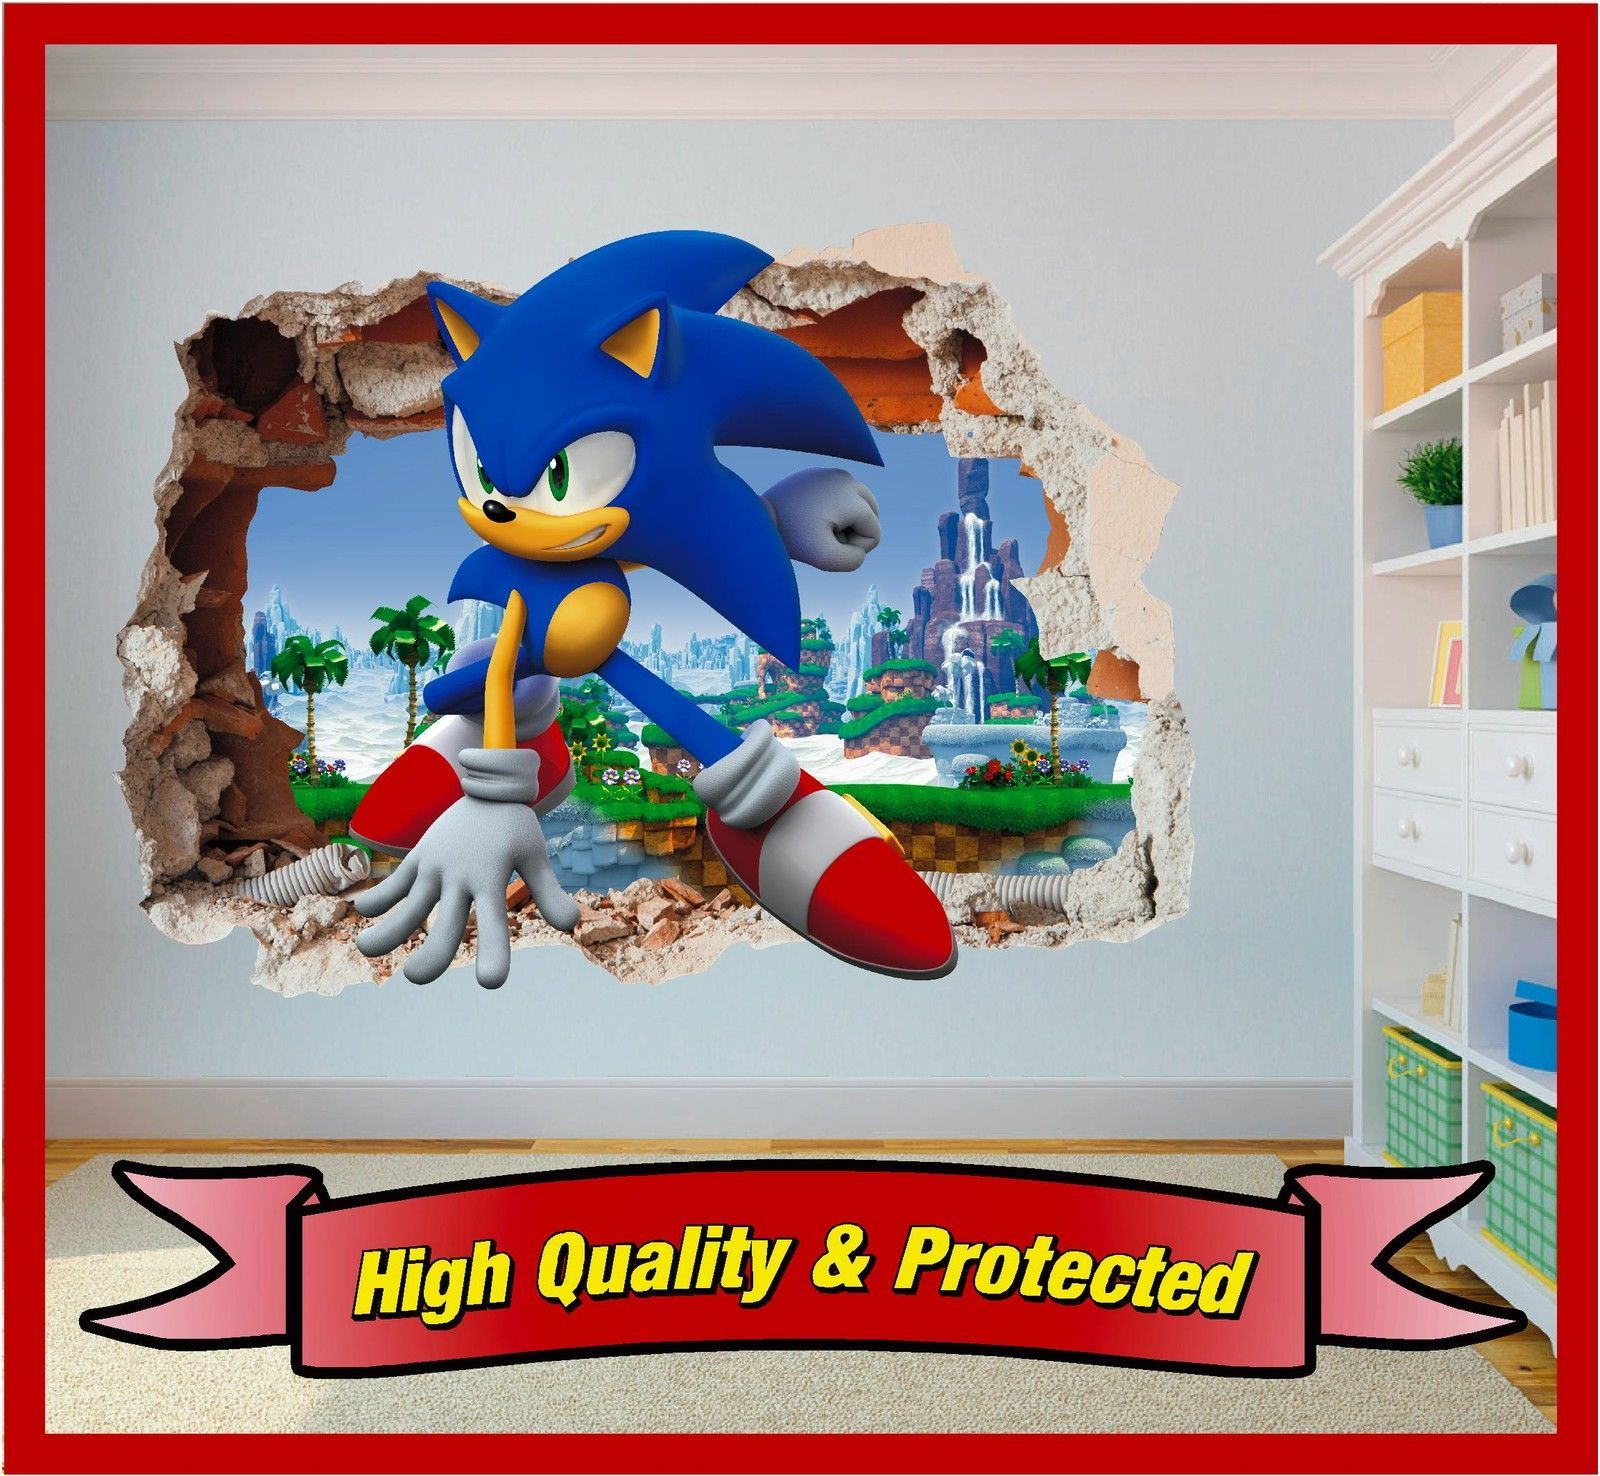 Sonic The Hedgehog Hole In Wall 2 Printed Vinyl Sticker Decal Children Bedroom Kid Room Decor Childrens Bedrooms Boys Sticker Wall Art